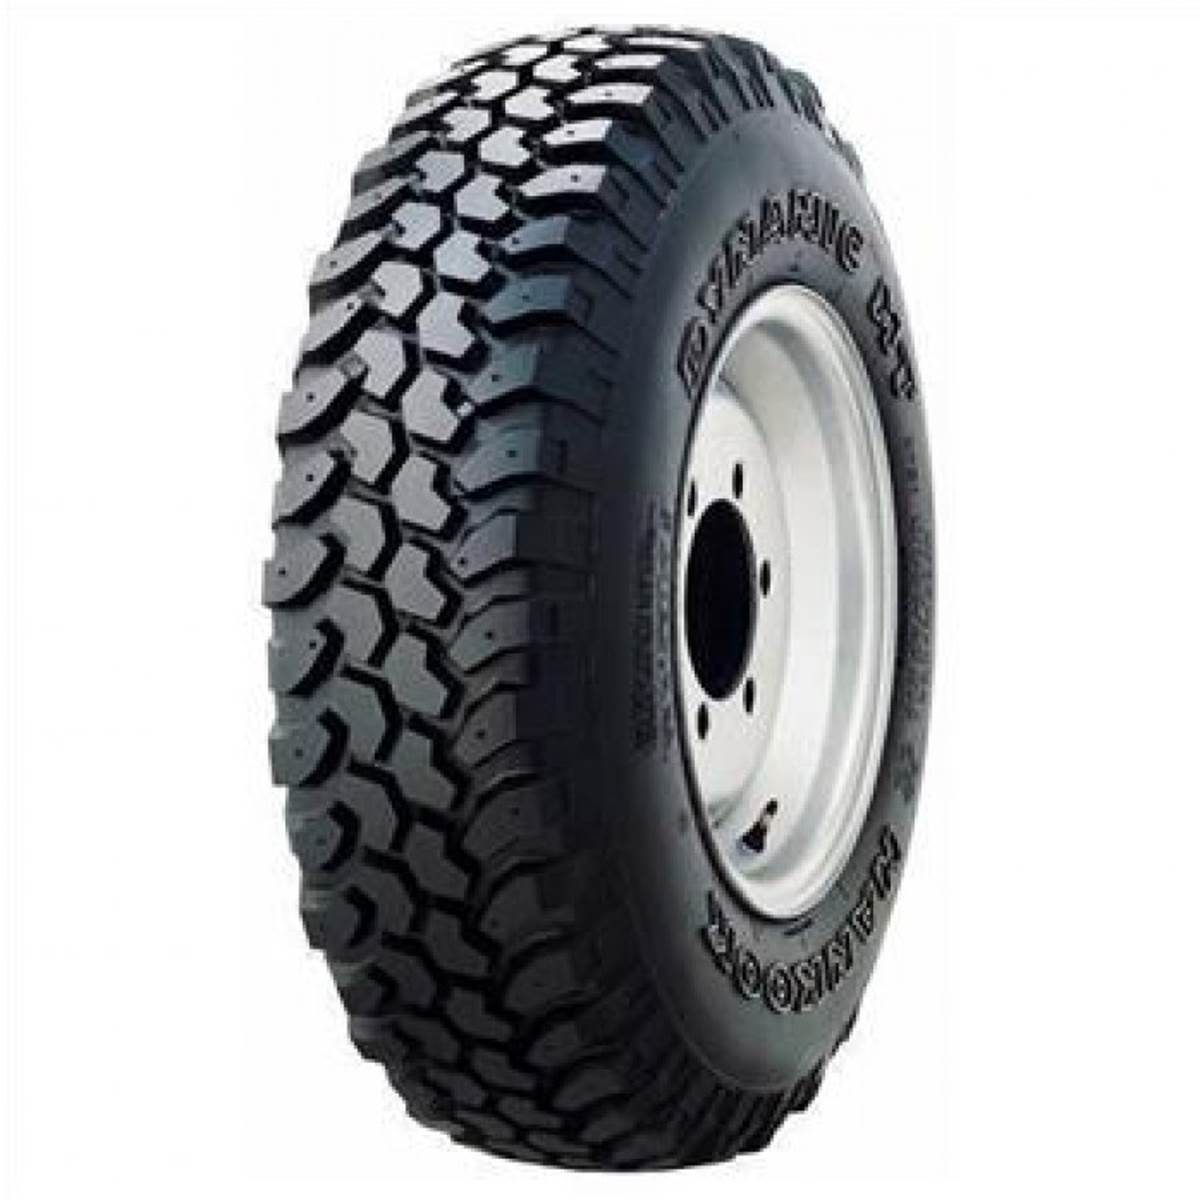 Hankook Dynamic MT RT01